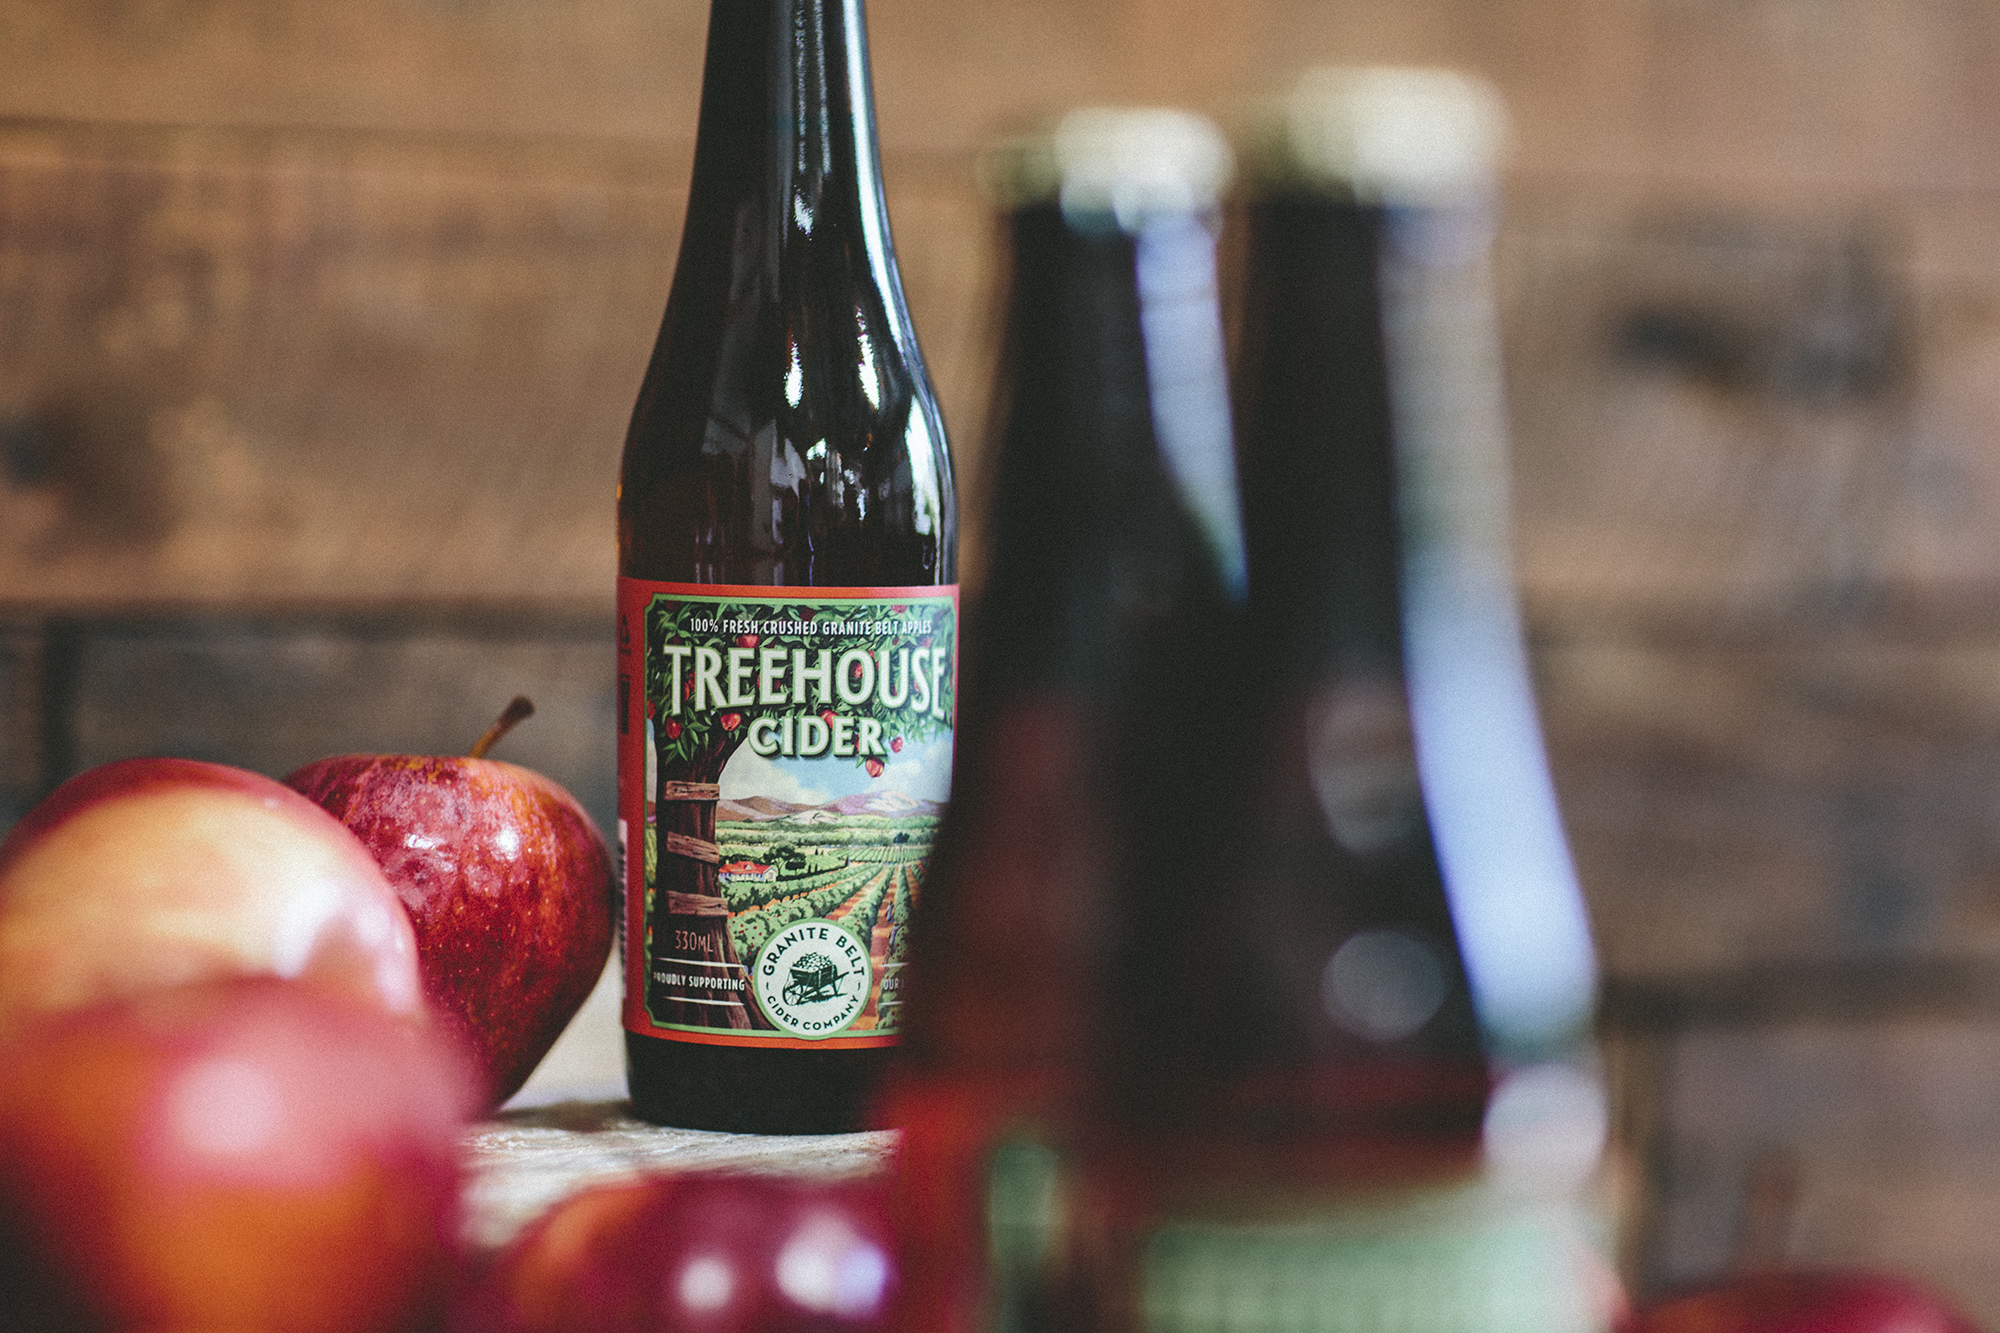 Treehouse_cider.jpeg